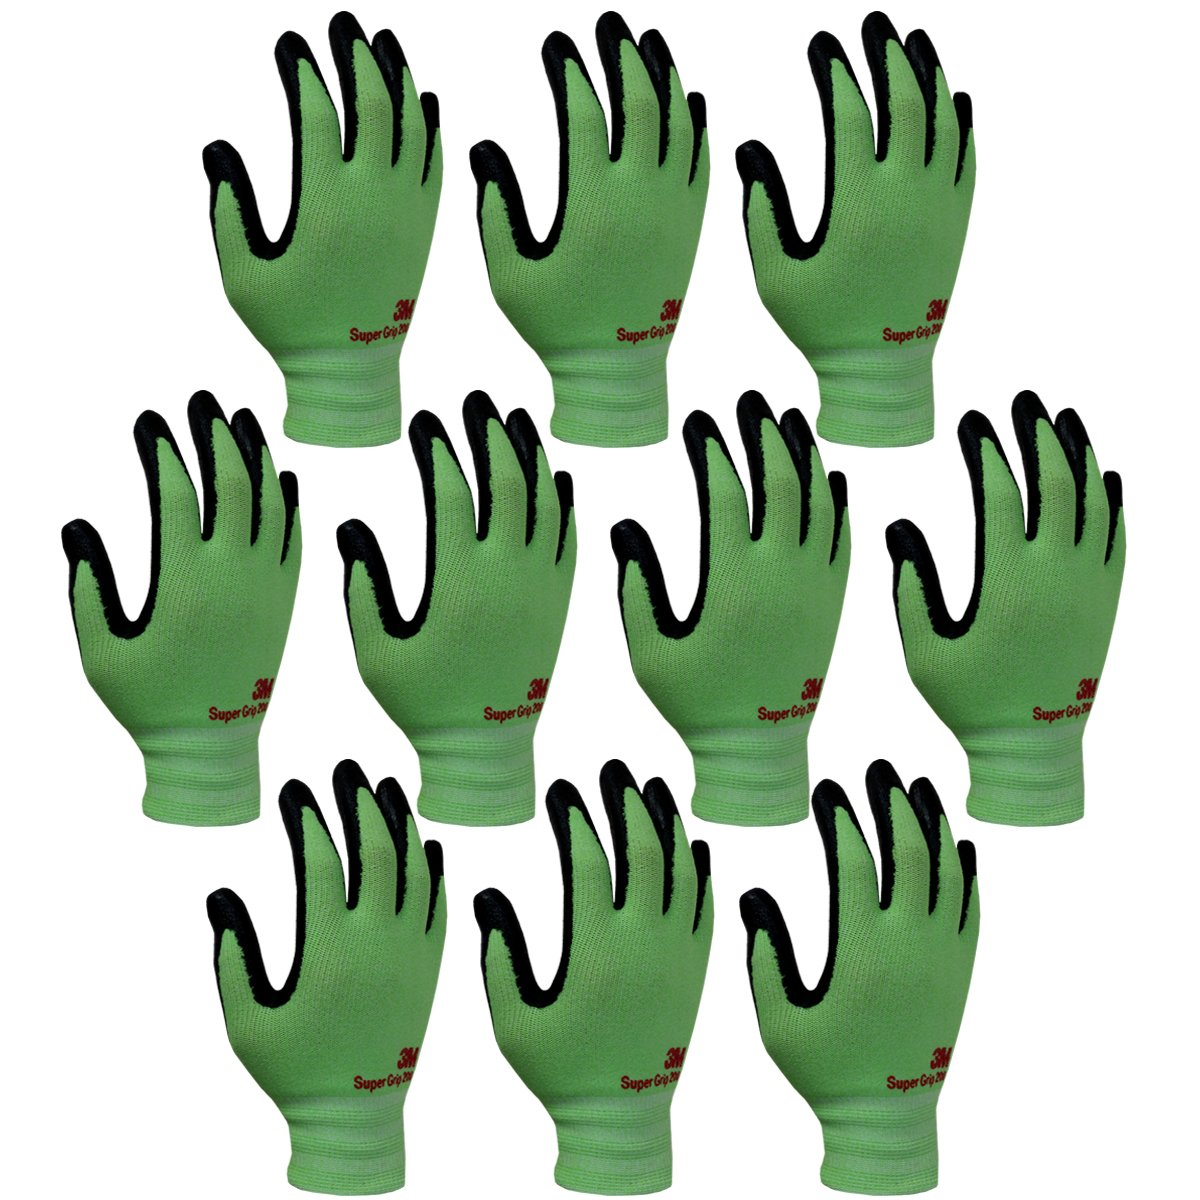 3M Super Grip 200 All Day Comfort Nitrile Foam Coated Work Gloves -10 Pairs (Medium, Green)